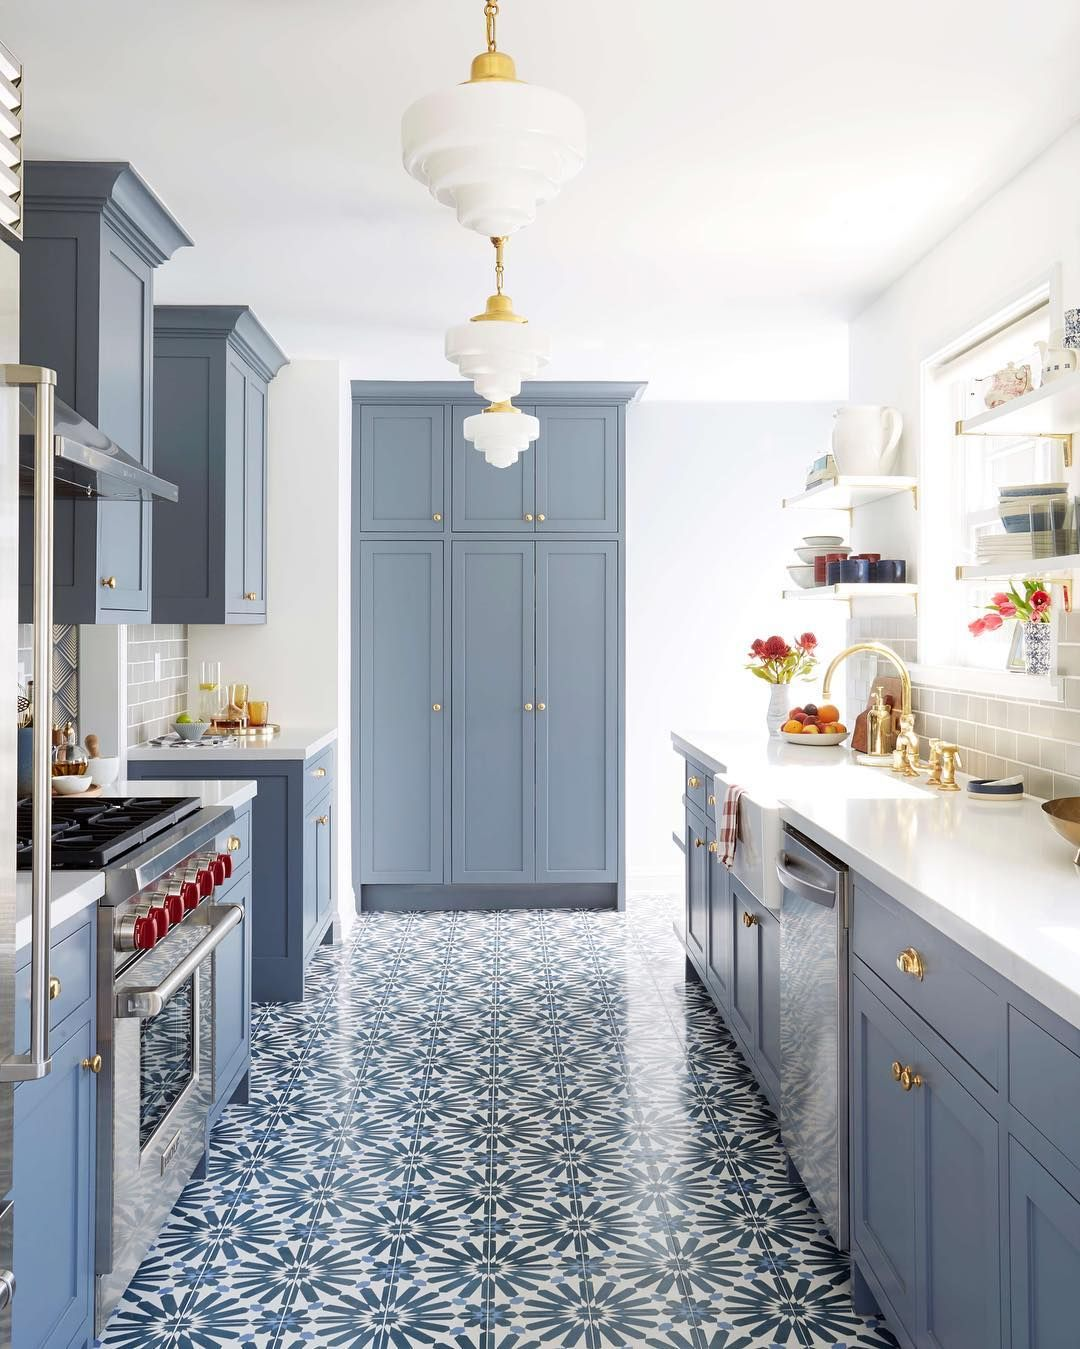 7 Beautiful Interiors On Instagram You 39 Ll Fall In Love With Home Amp Decor Singapore Blue Kitchen Designs Blue Kitchen Walls Interior Design Kitchen,500 Square Feet Apartment